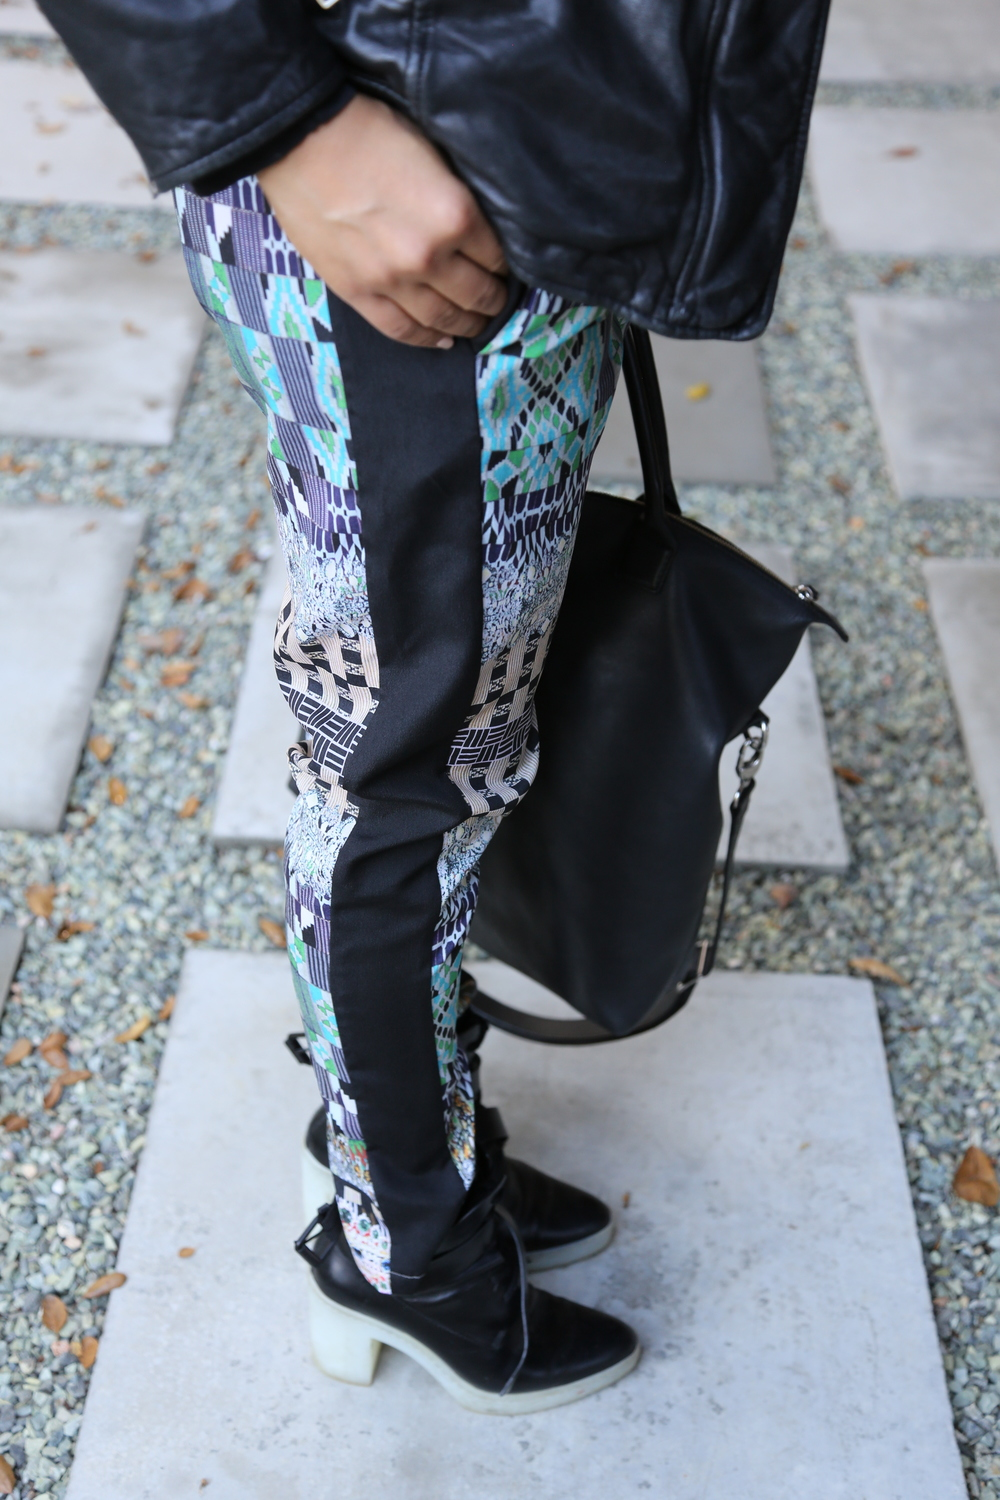 proenza-schouler-print-mix-canyon-alexander-wang-black-boot-isabel-marant-leather-jacket-WANT-leather-bag-tote-los-angeles.jpg